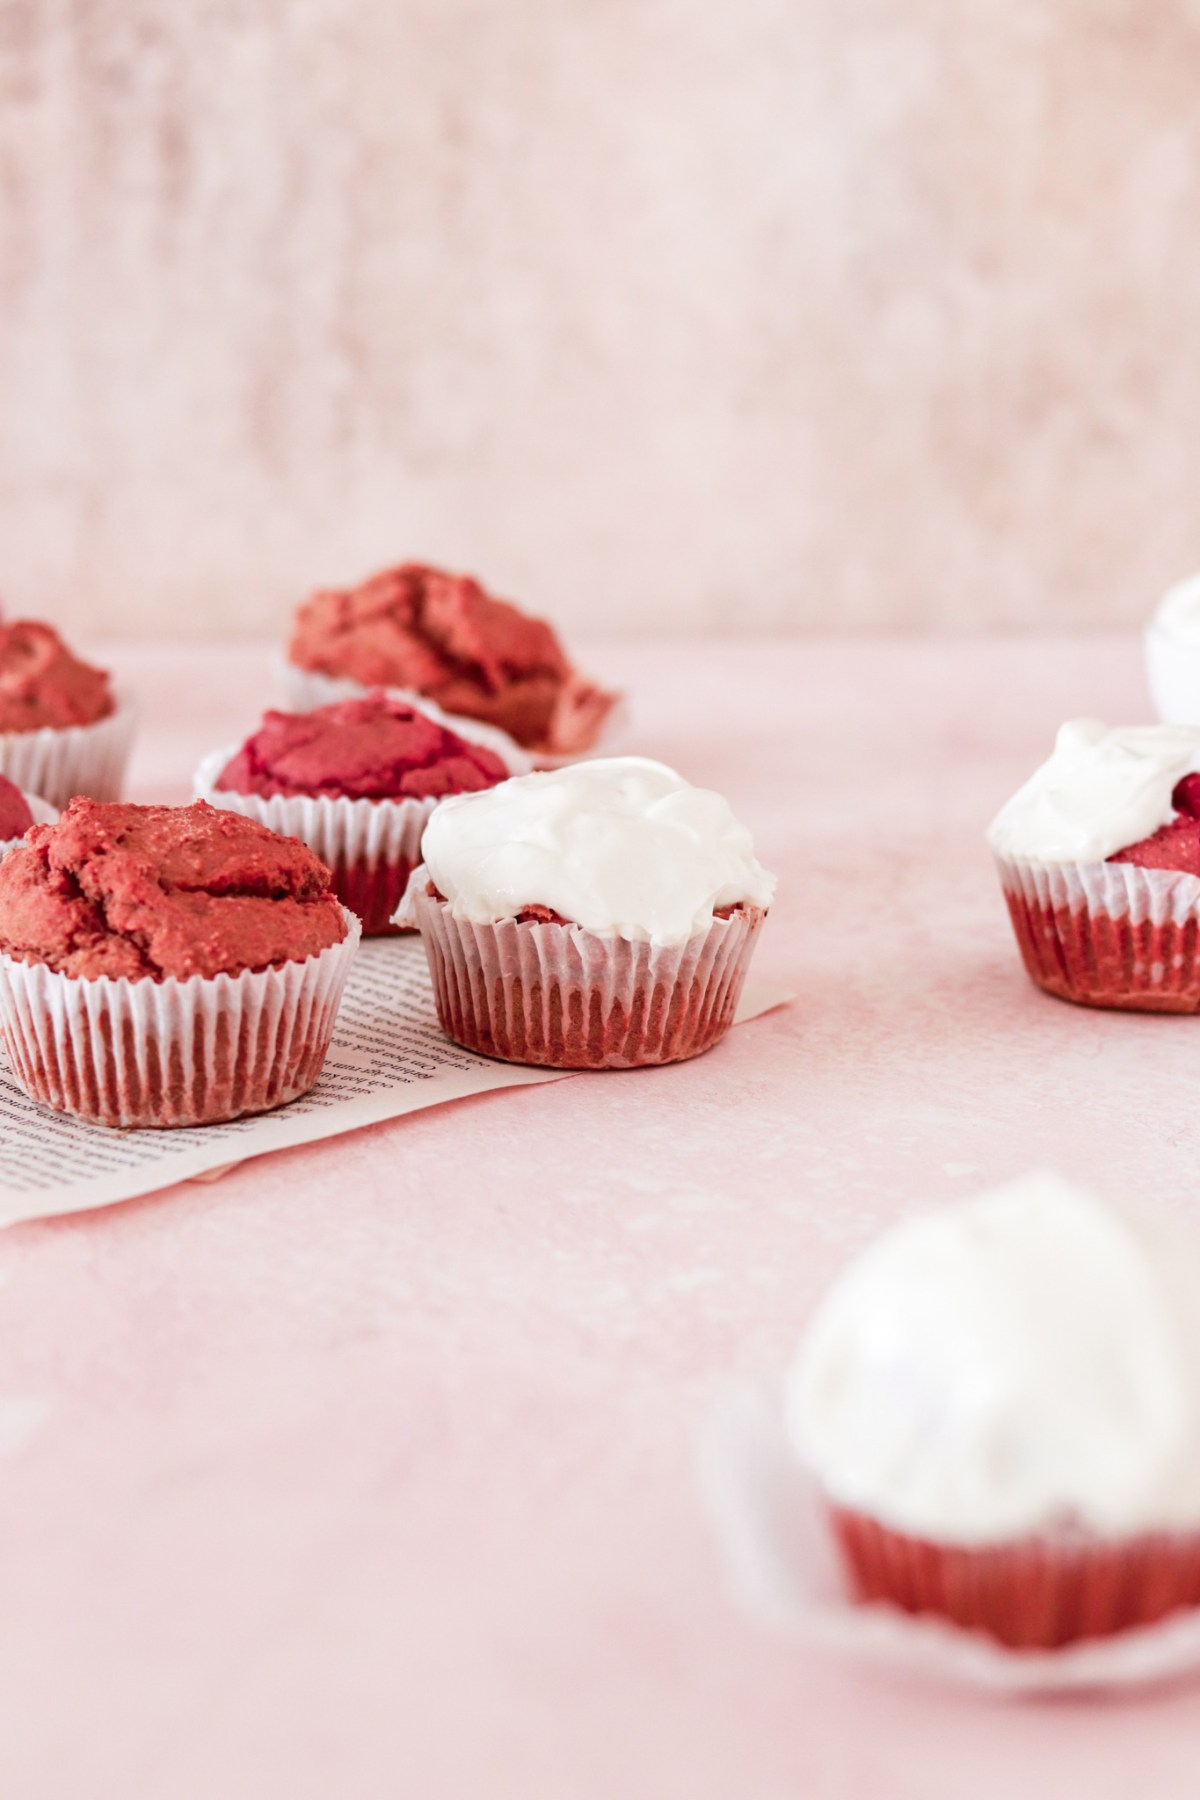 Red Velvet Cupcakes with Cream Cheese Frosting (Vegan, Gluten & Sugar Free) From Front